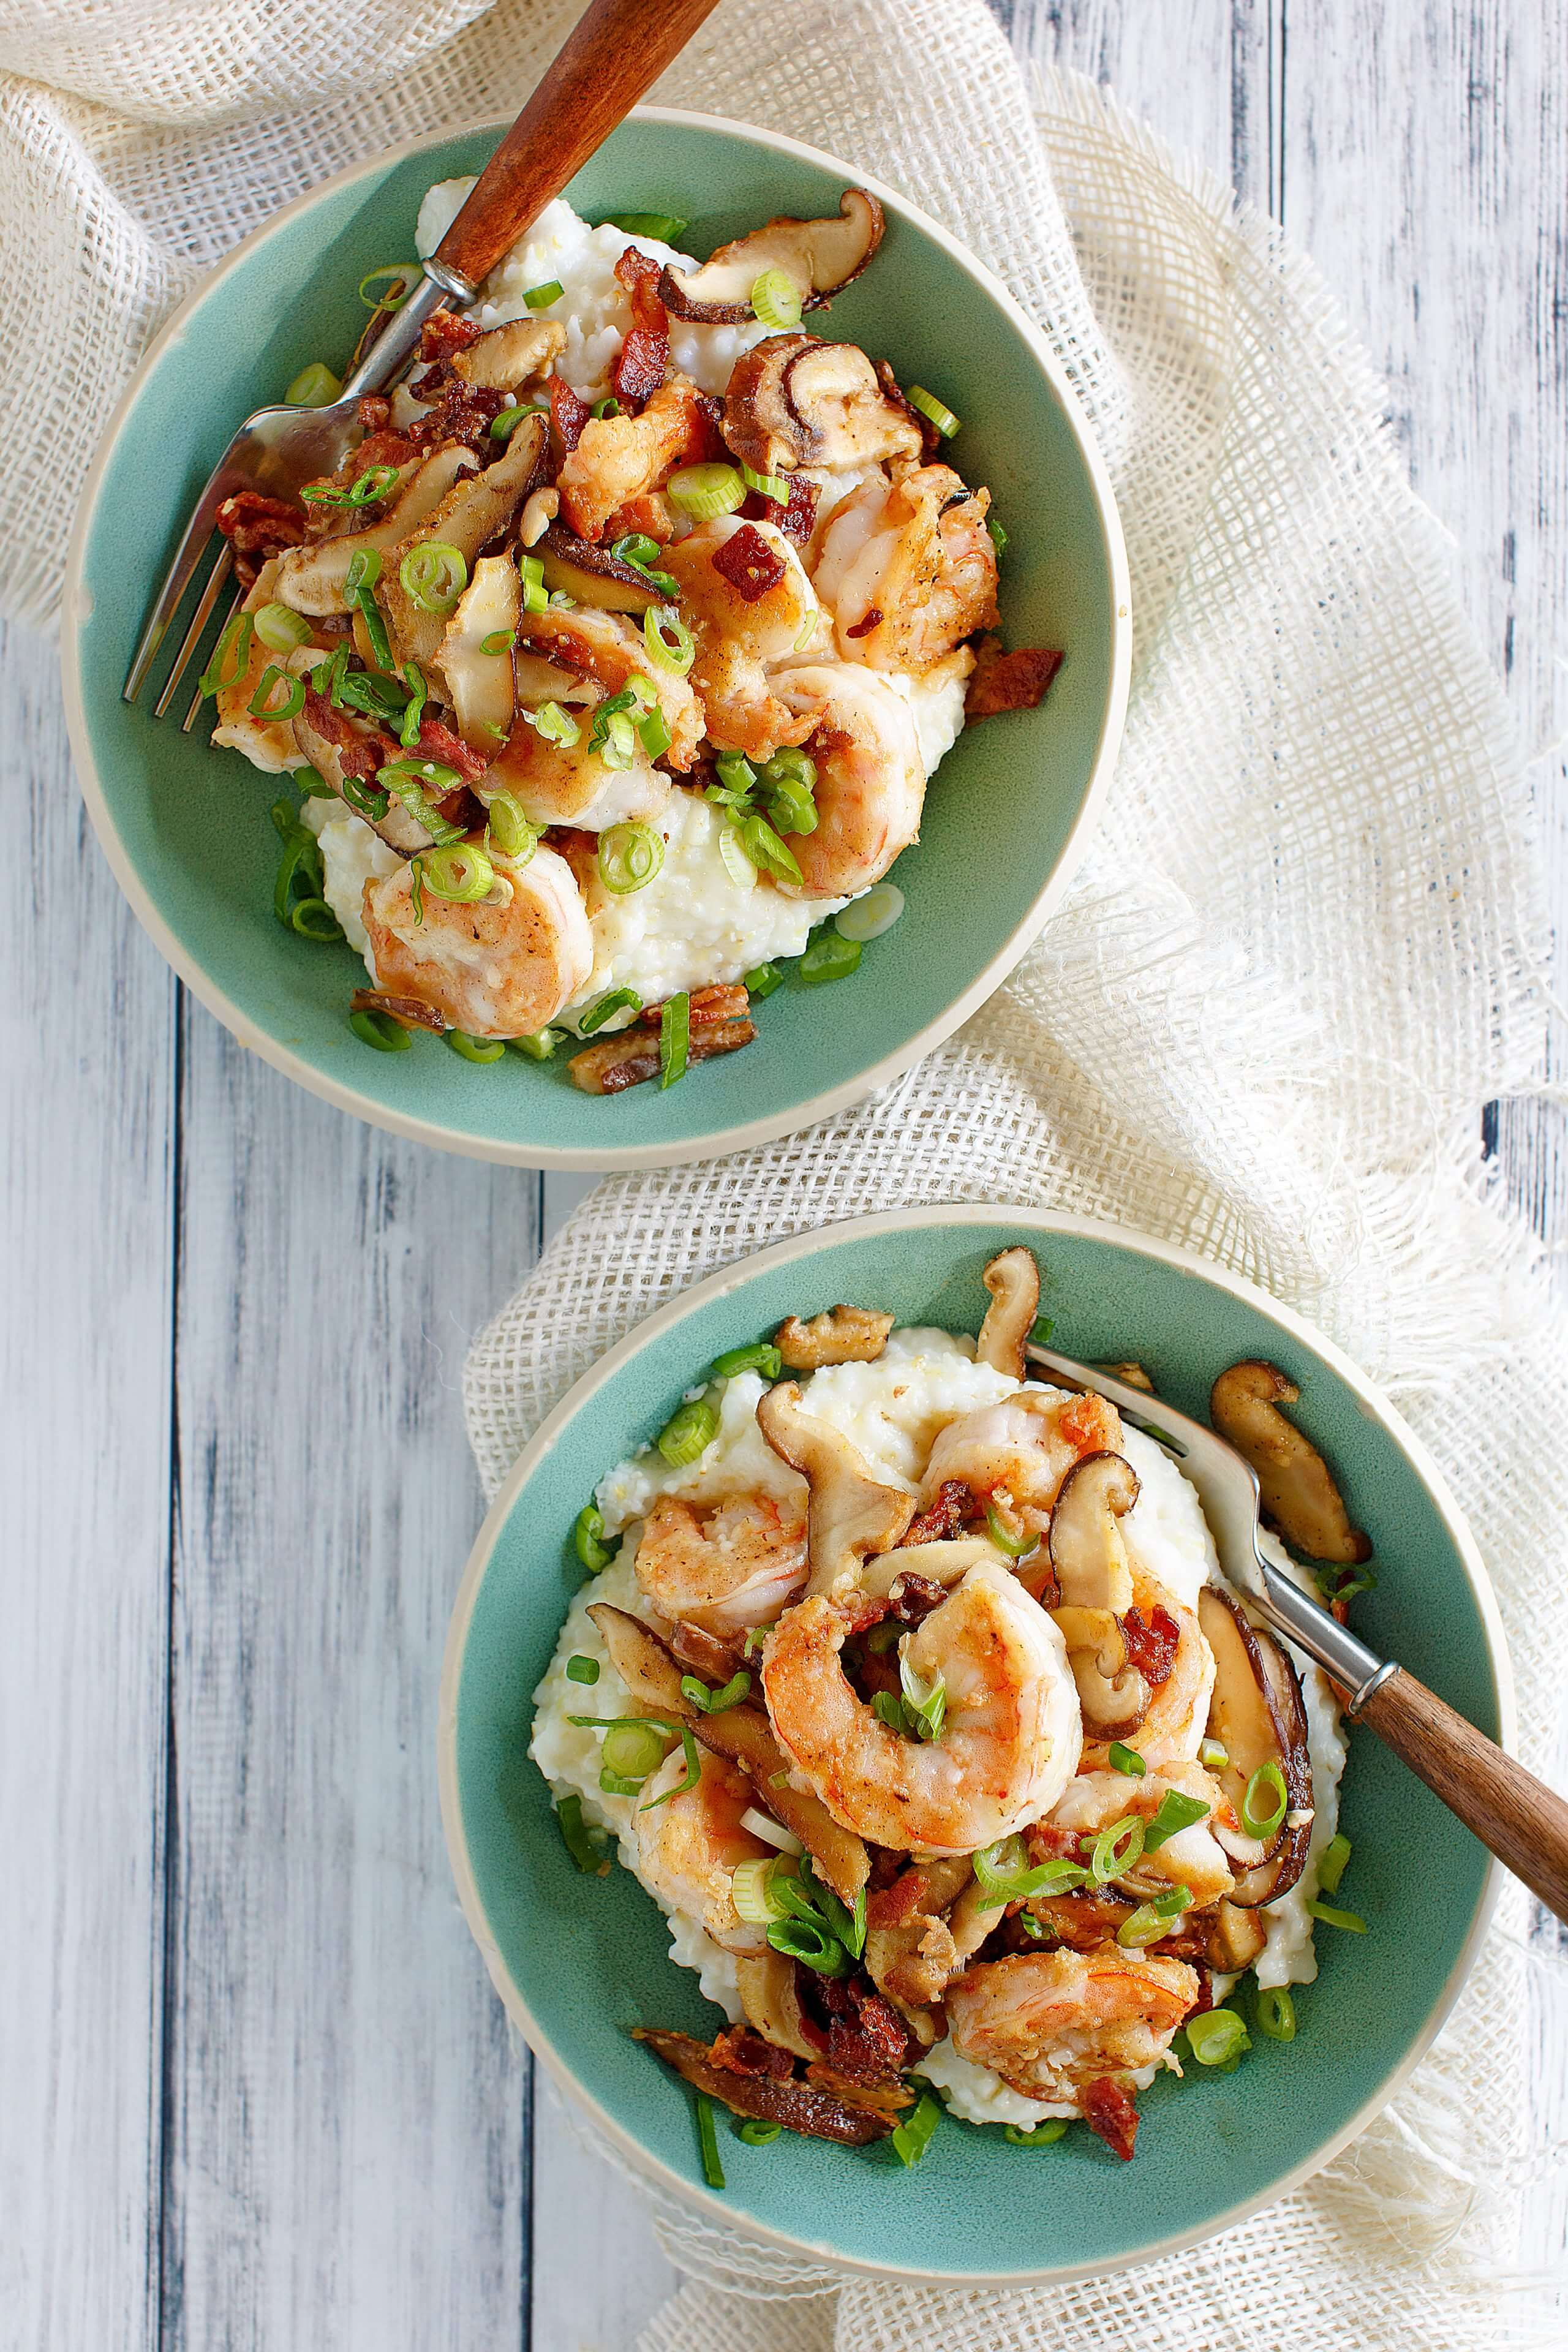 Best Southern shrimp and grits recipe - Julia's Simply Southern